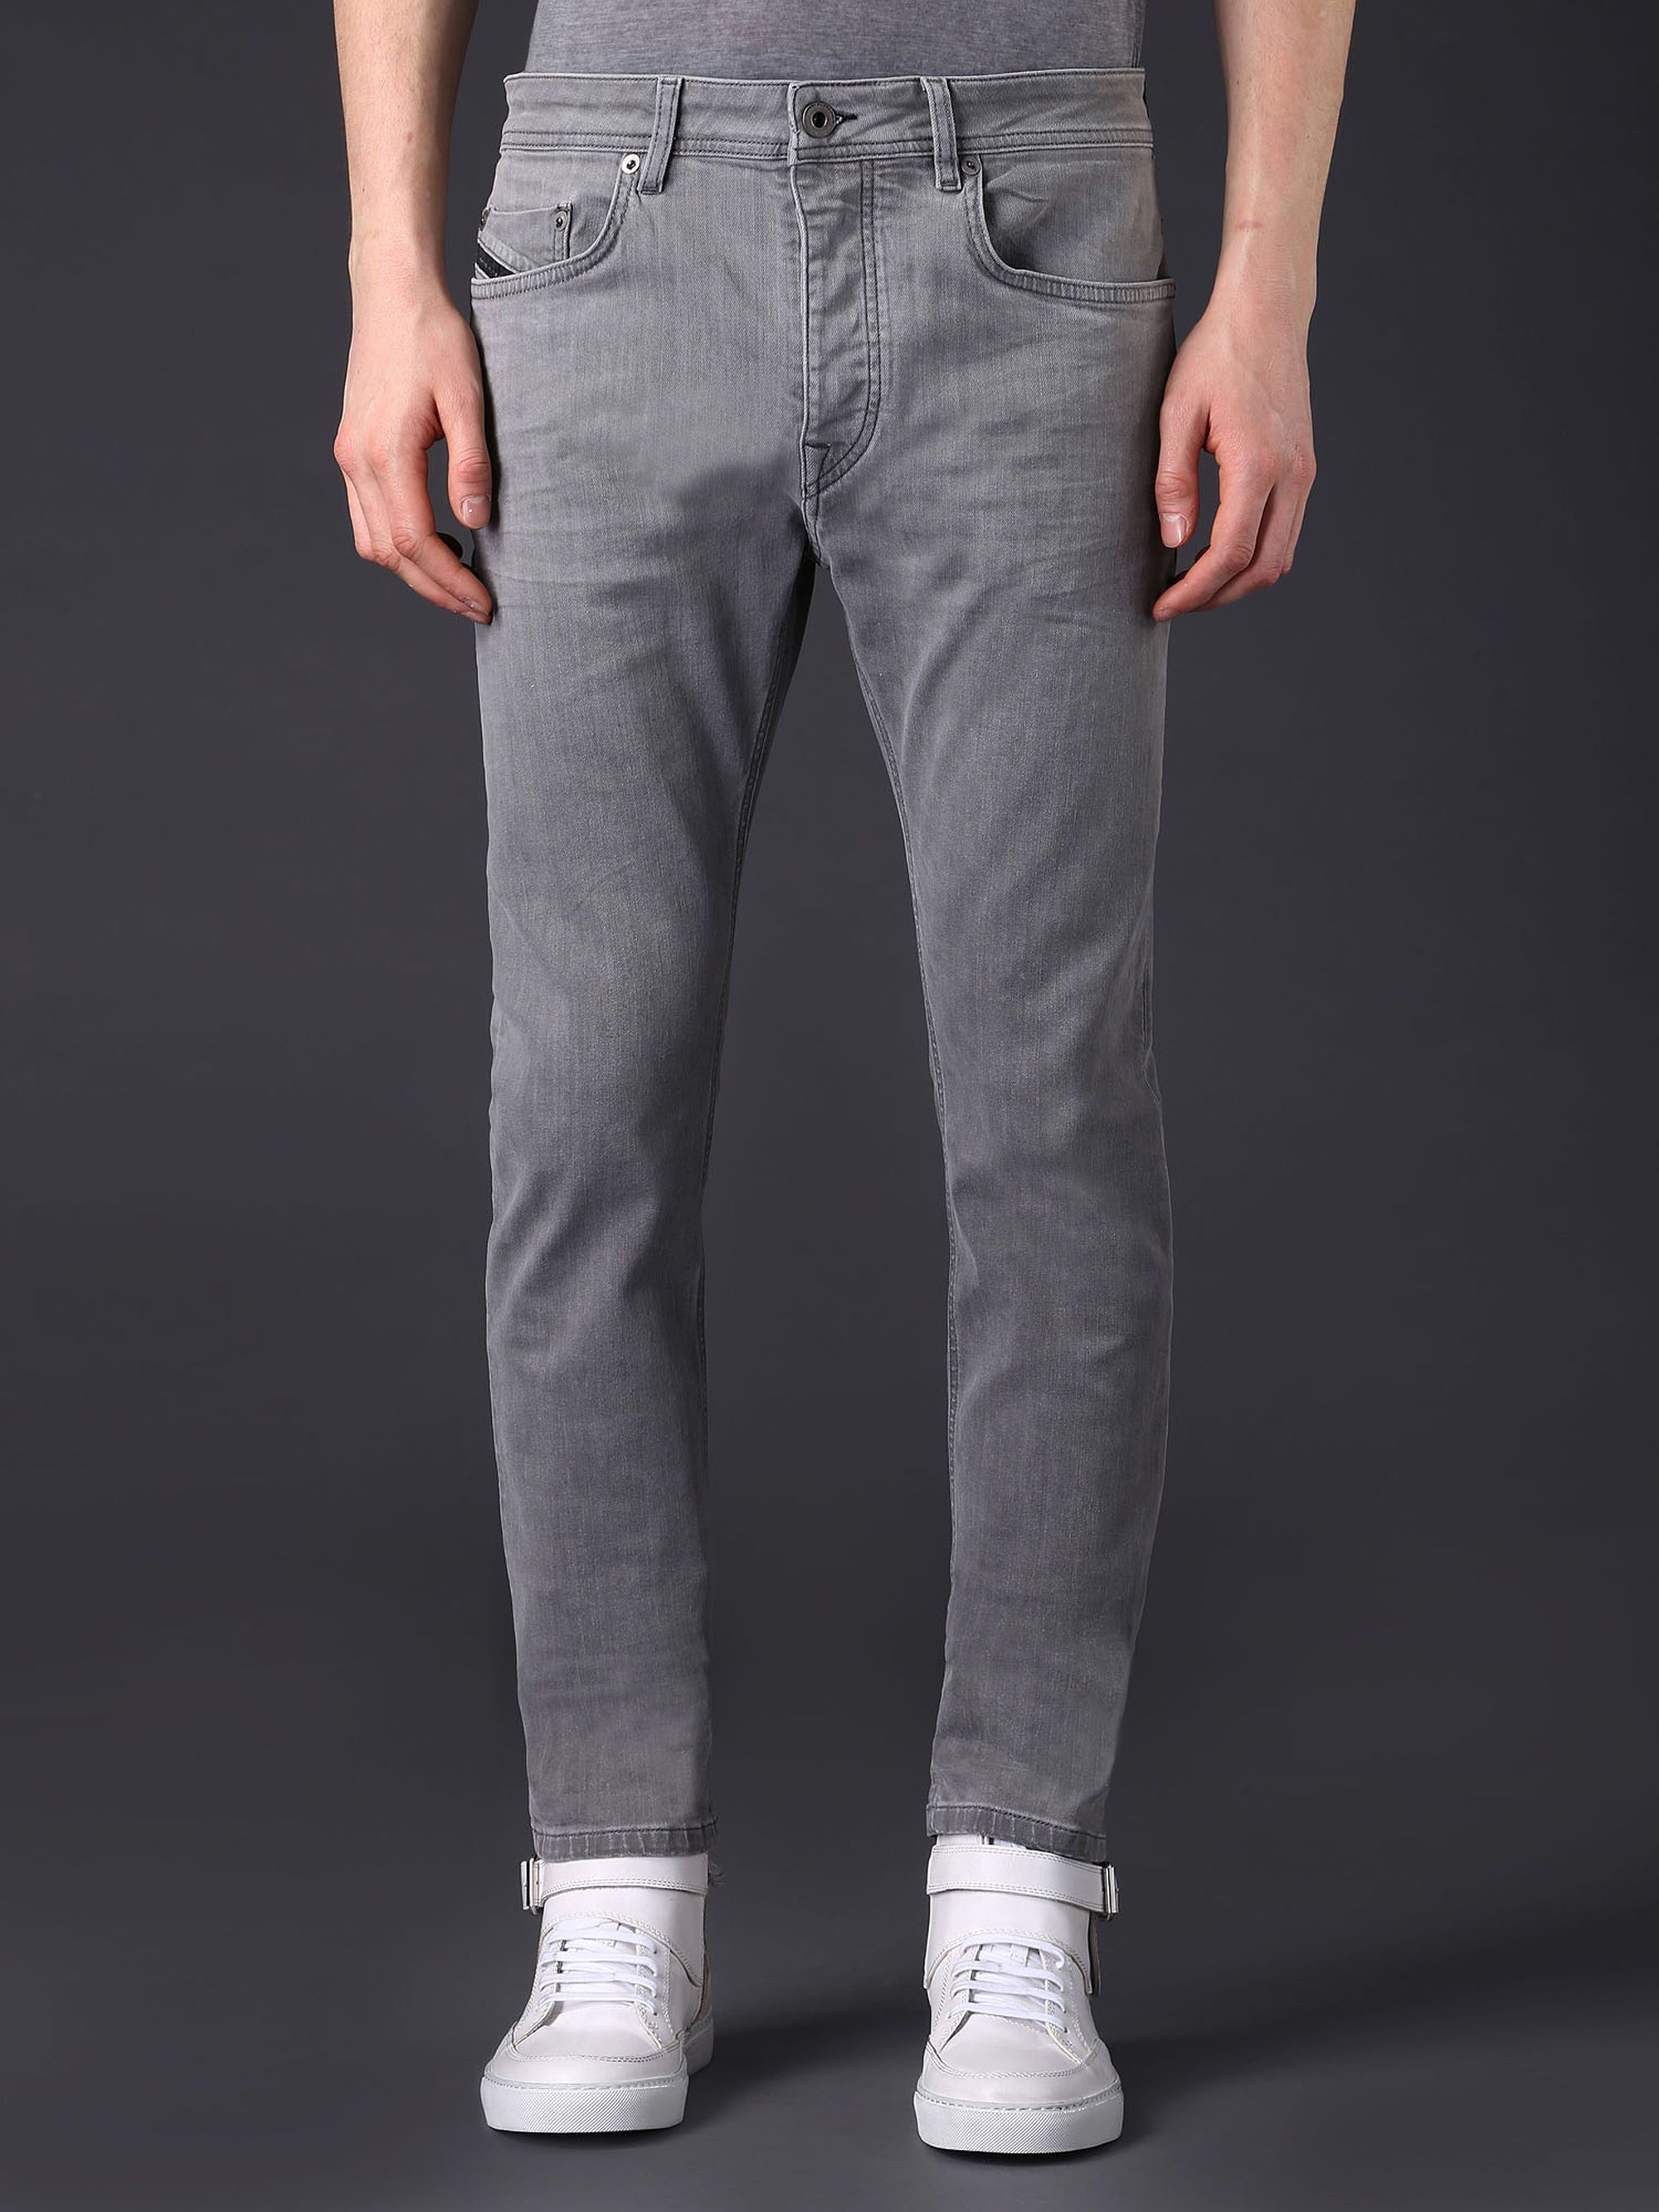 Diesel Black Gold TYPE-2512 Stretch Denim Jeans in Grey Jeans from ...